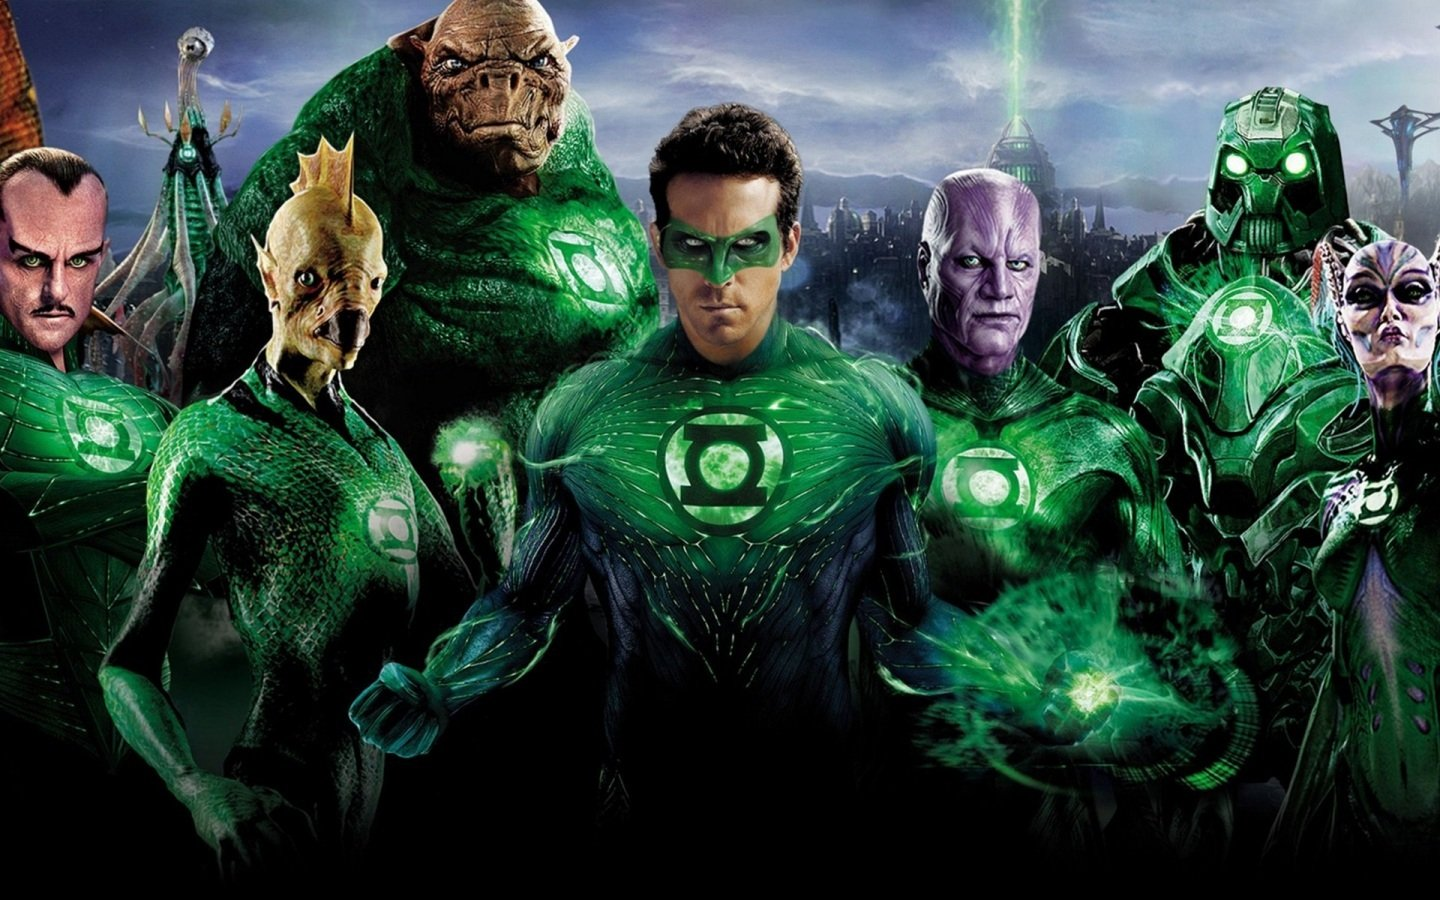 New Green Lantern Movie Poster Wallpaper Hd For Desktop Background 1440x900